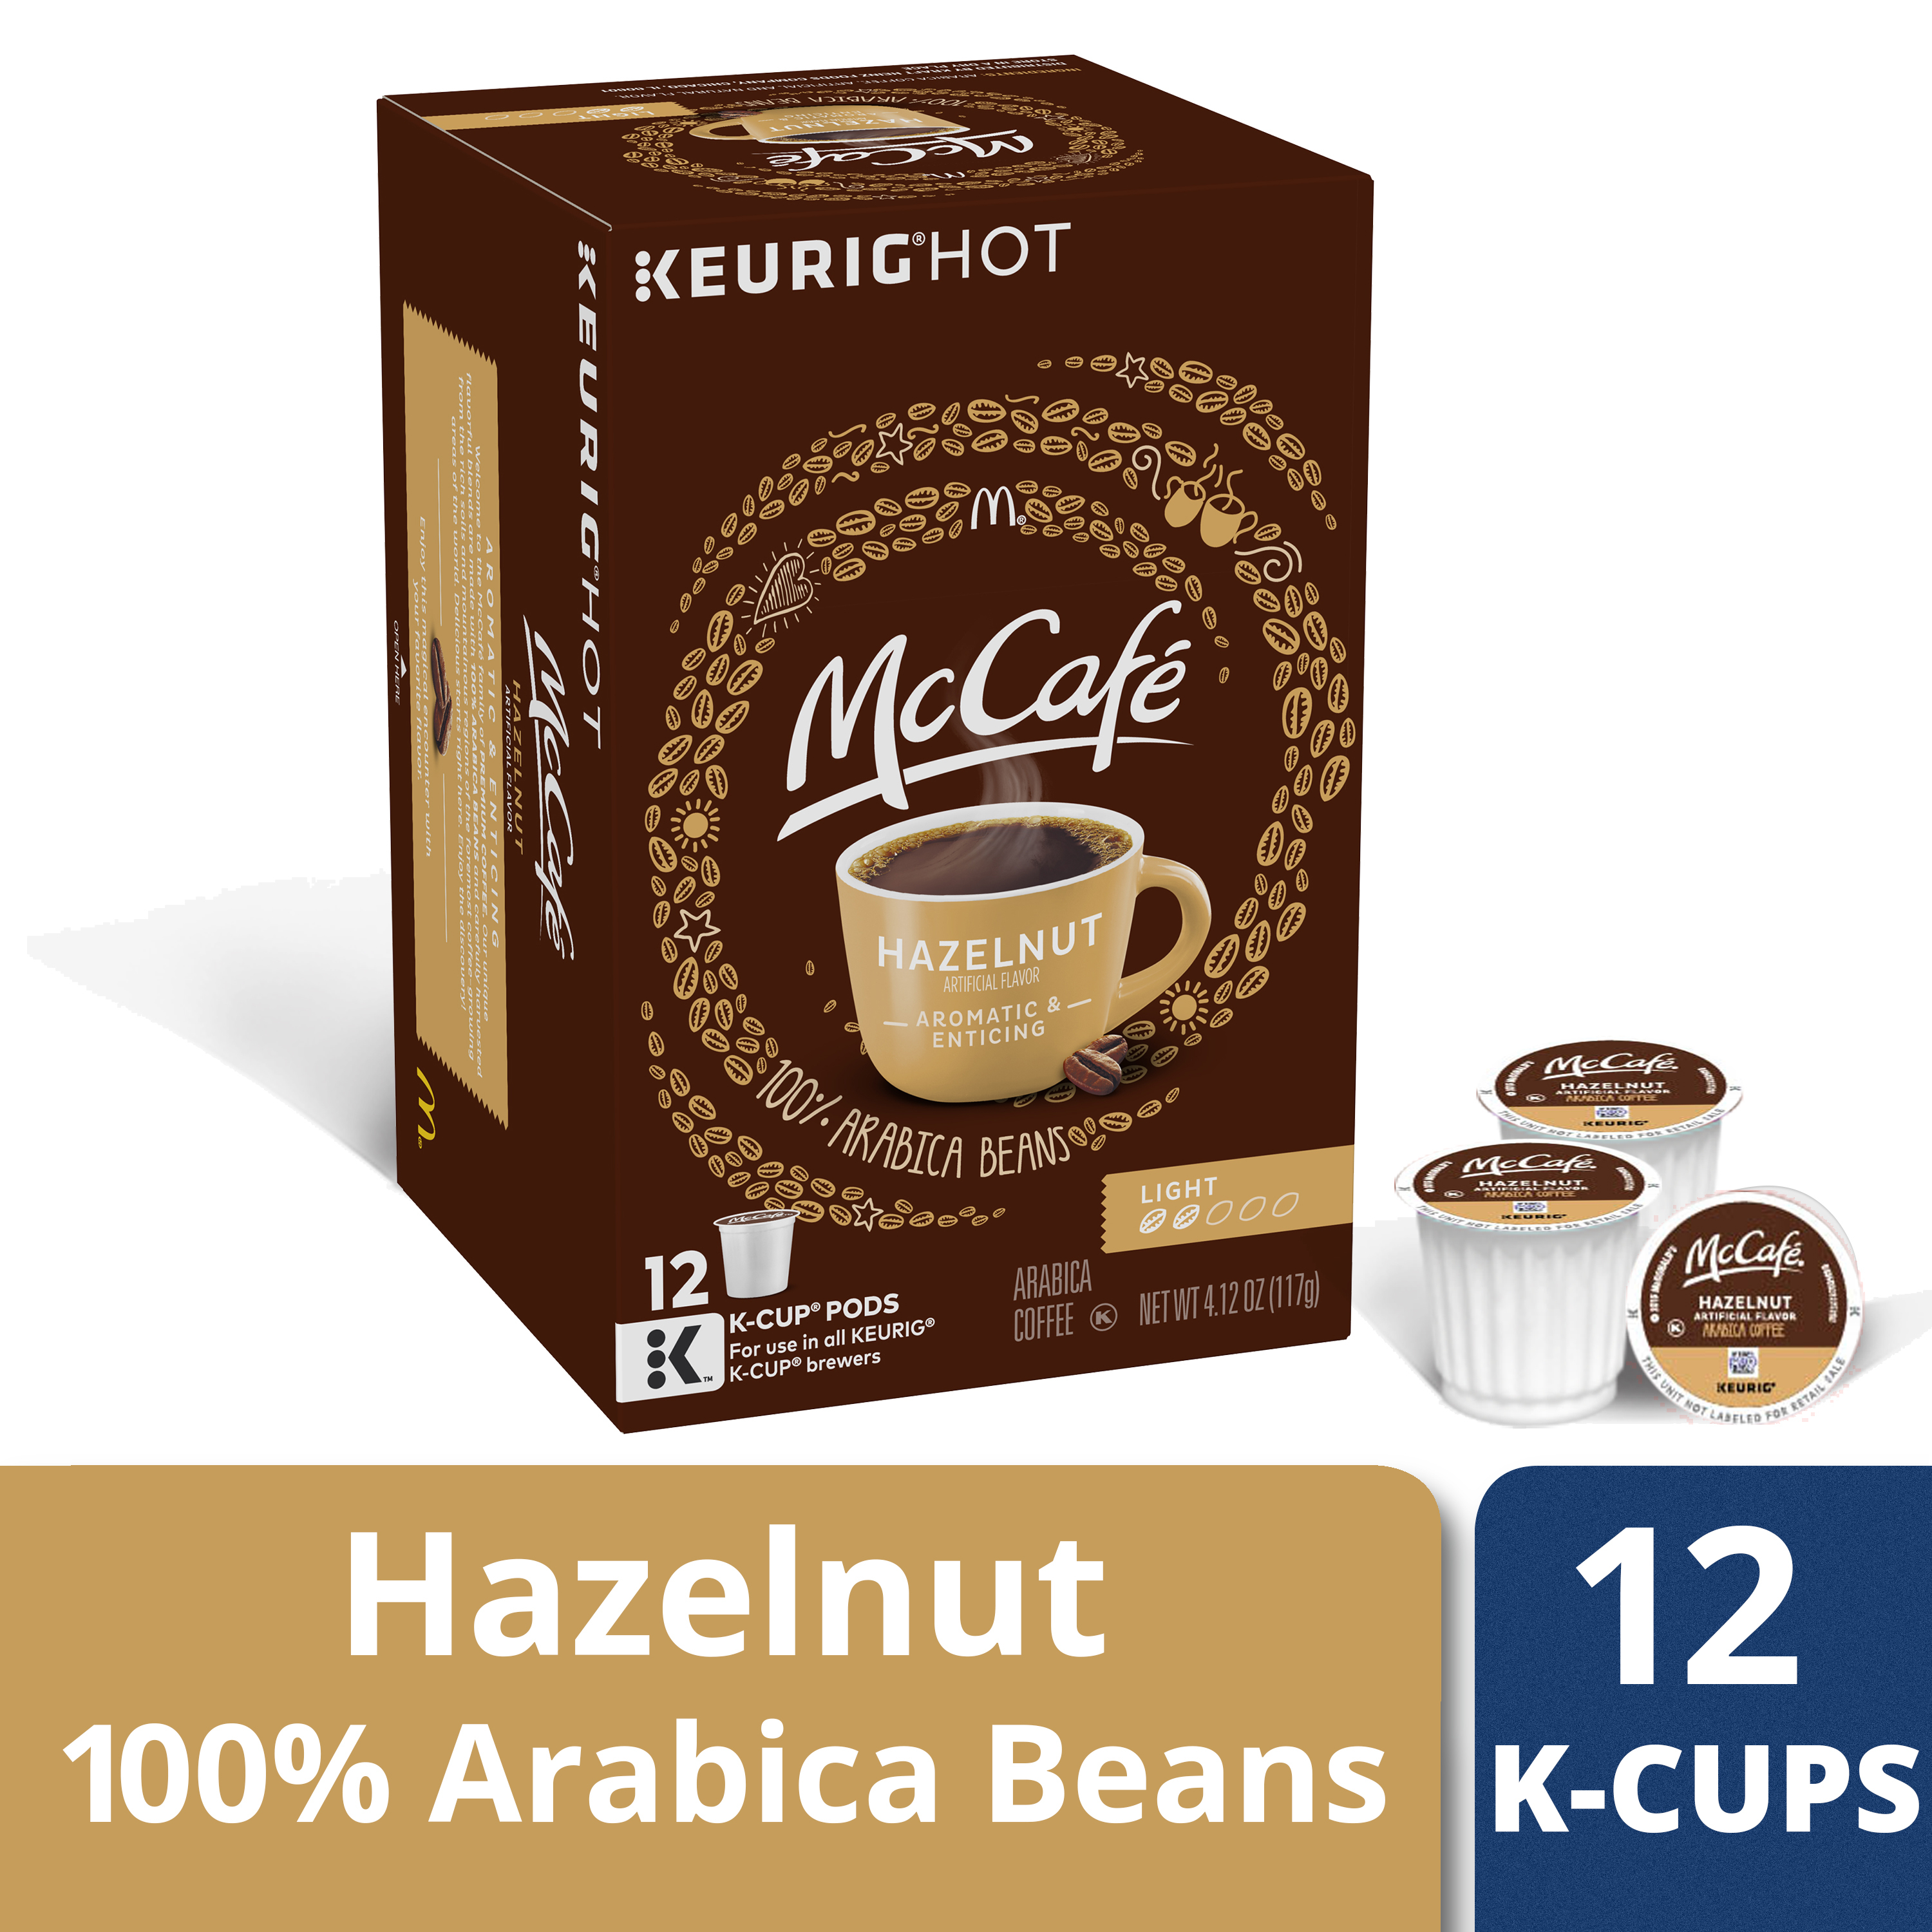 McCafe Hazelnut Coffee K-Cup Pods 12 count